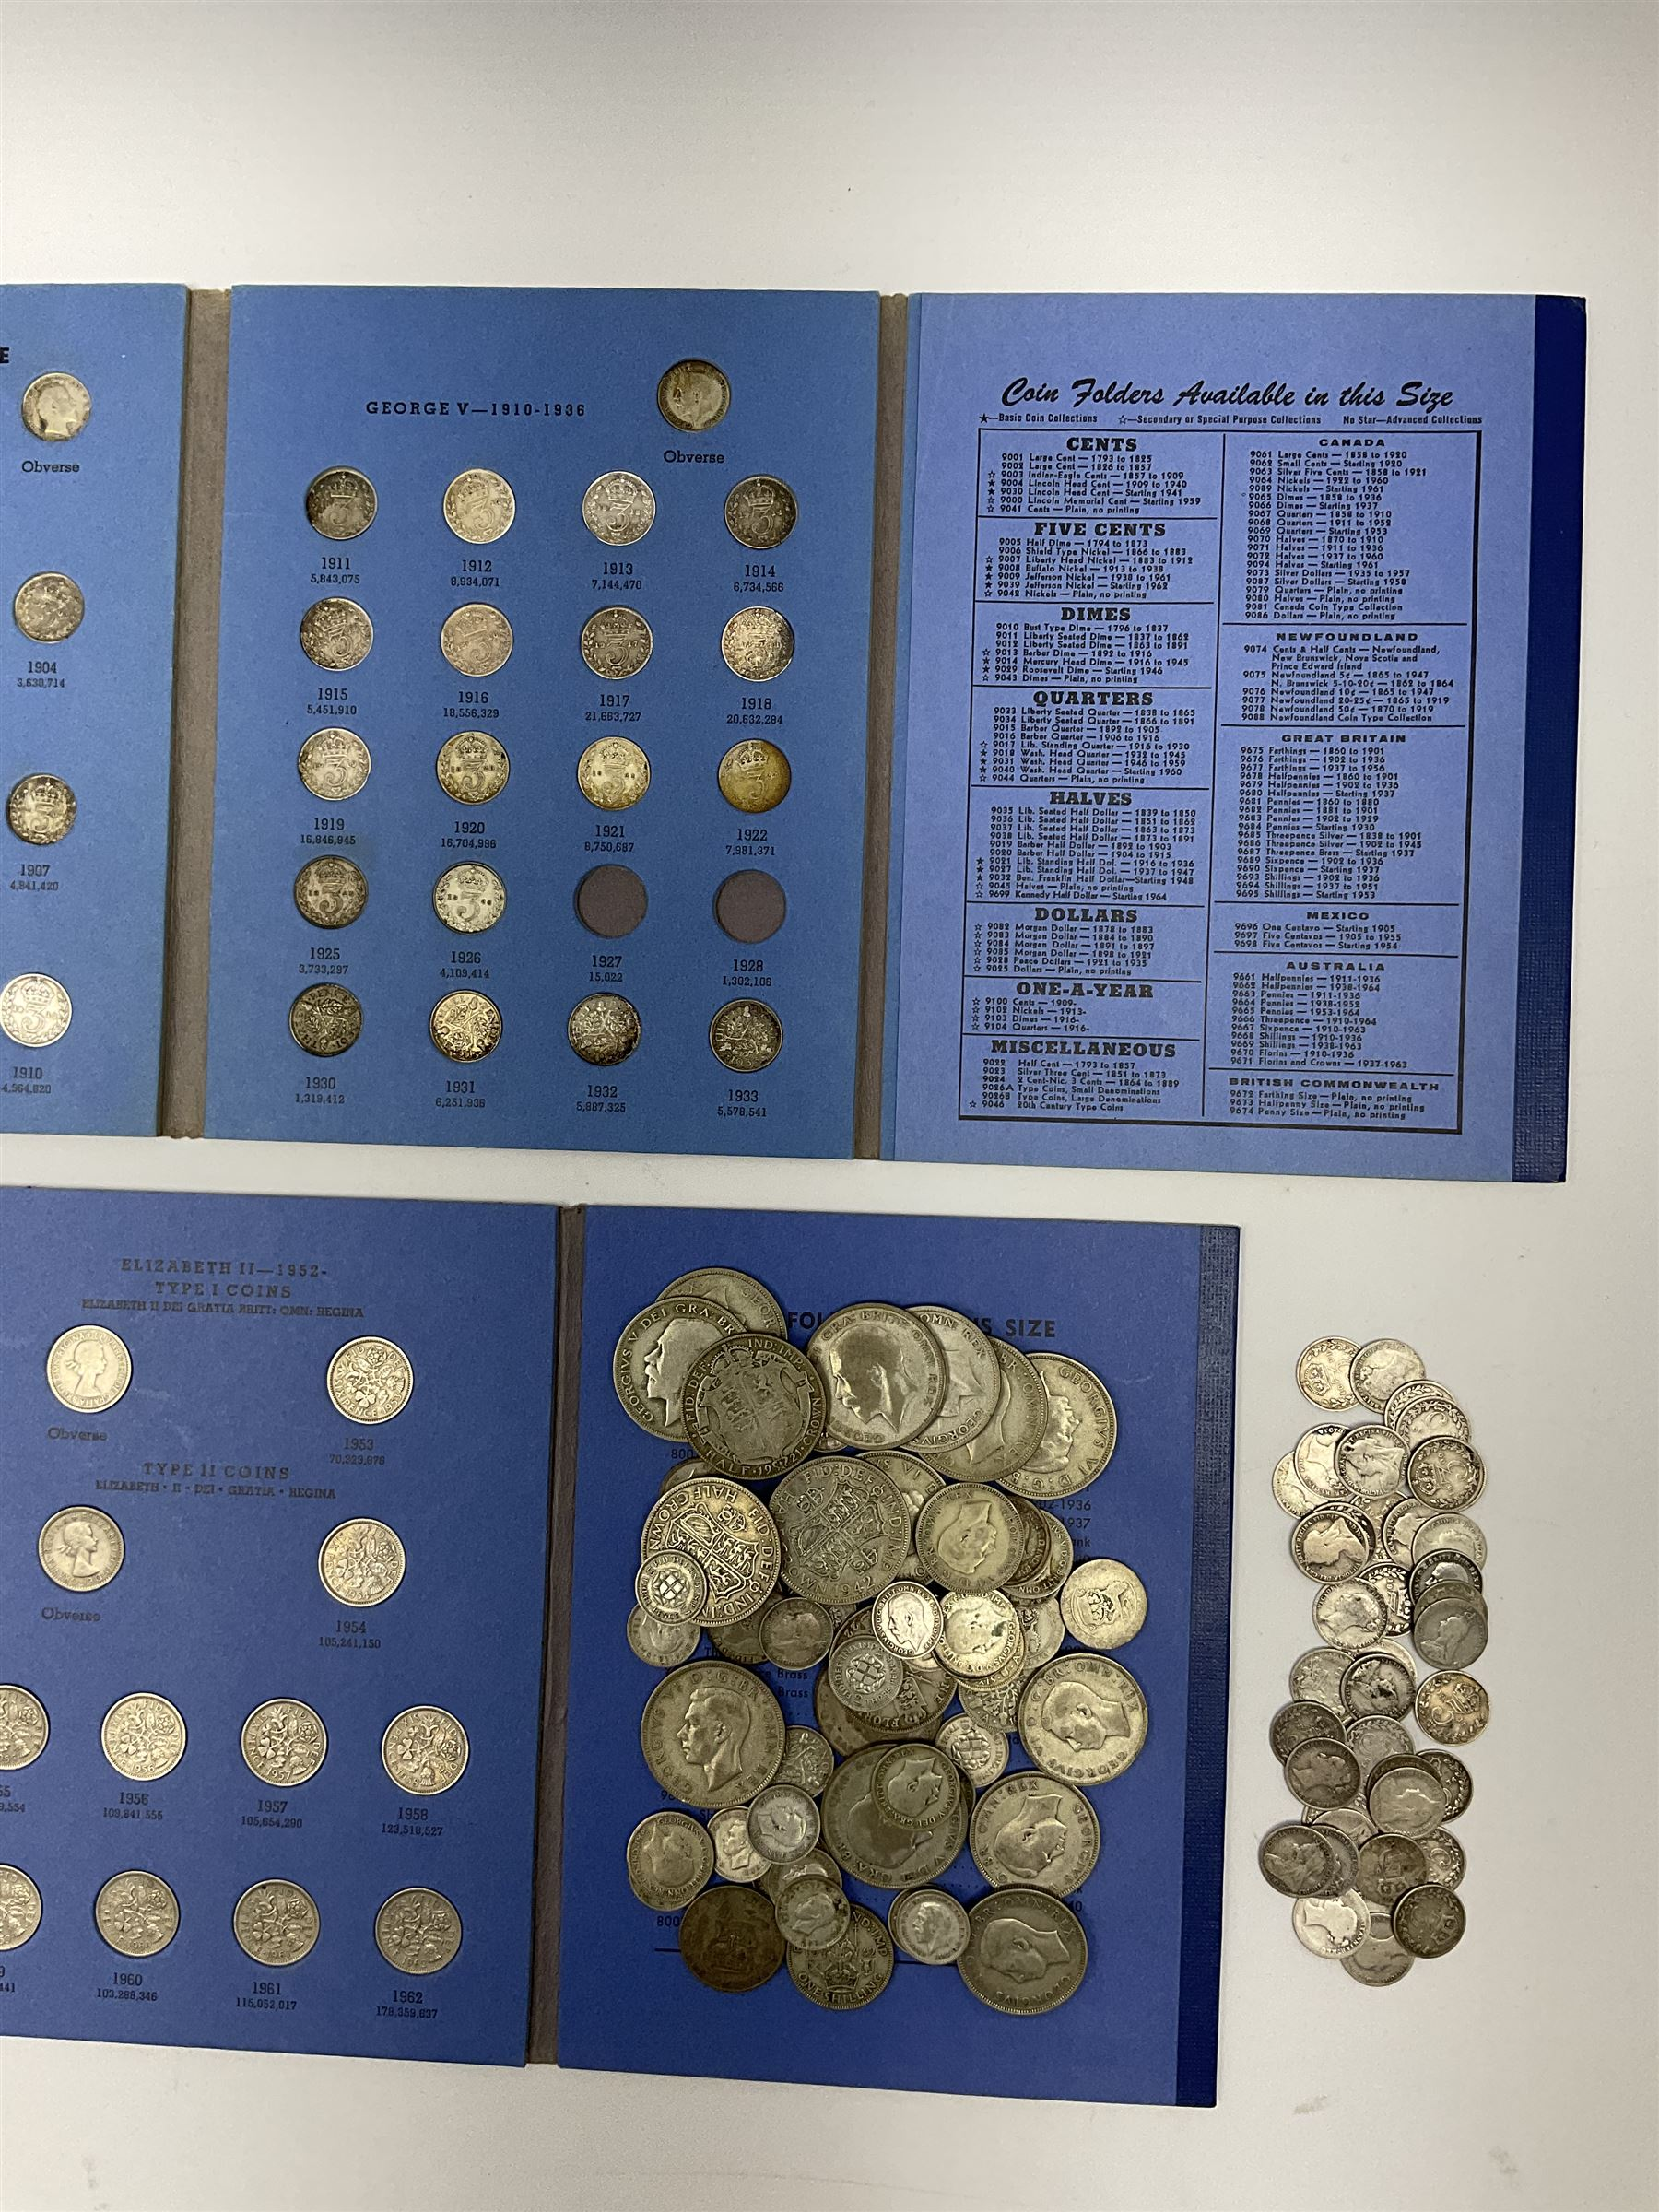 Coins including approximately 300 grams of pre 1947 Great British silver coins - Image 2 of 3